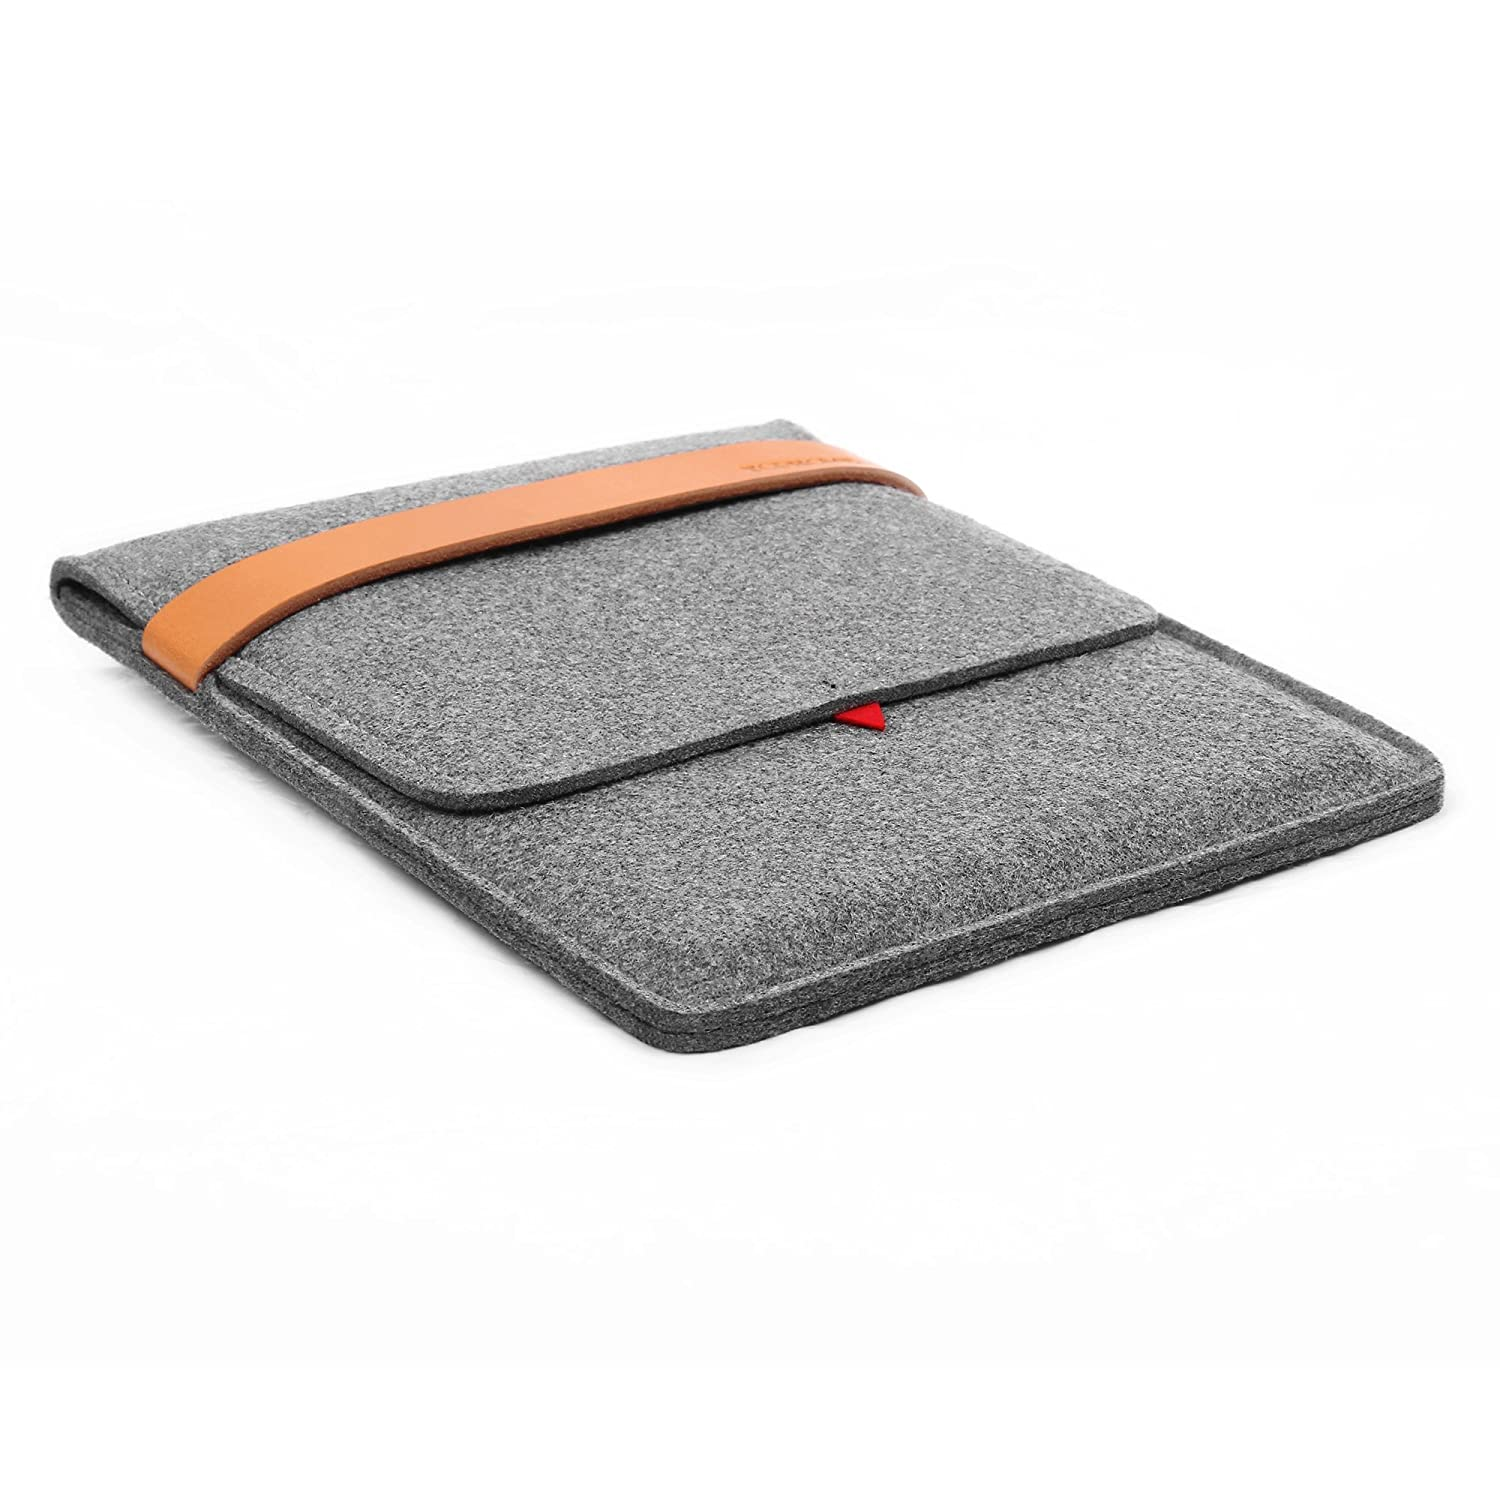 TOPHOME Ipad Sleeve Protector Bag Carrying Case Cover Wool Felt Sleeve Genuine Leather Lock for Apple iPad Mini//iPad mini 2// iPad Mini 3// iPad Mini 4 Grey